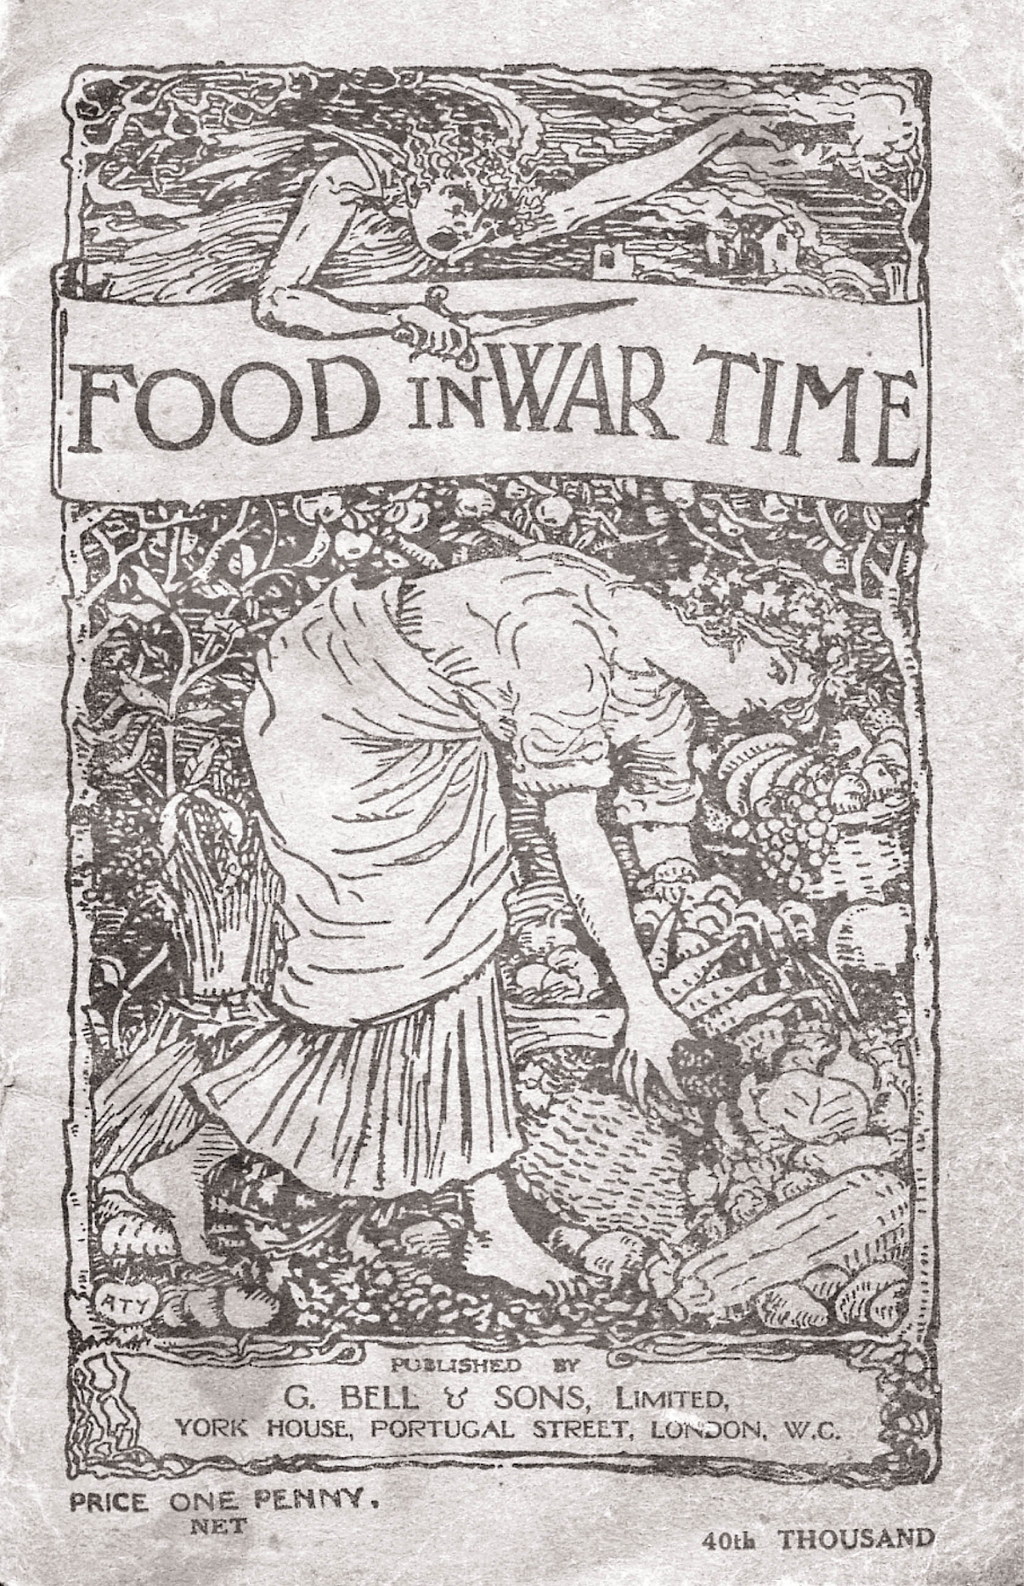 Food In War Time - Vegetarian Recipes For 100 Inexpensive Dishes: And Helpful Suggestions For Providing Two Course Dinners For Six People For One Shilling